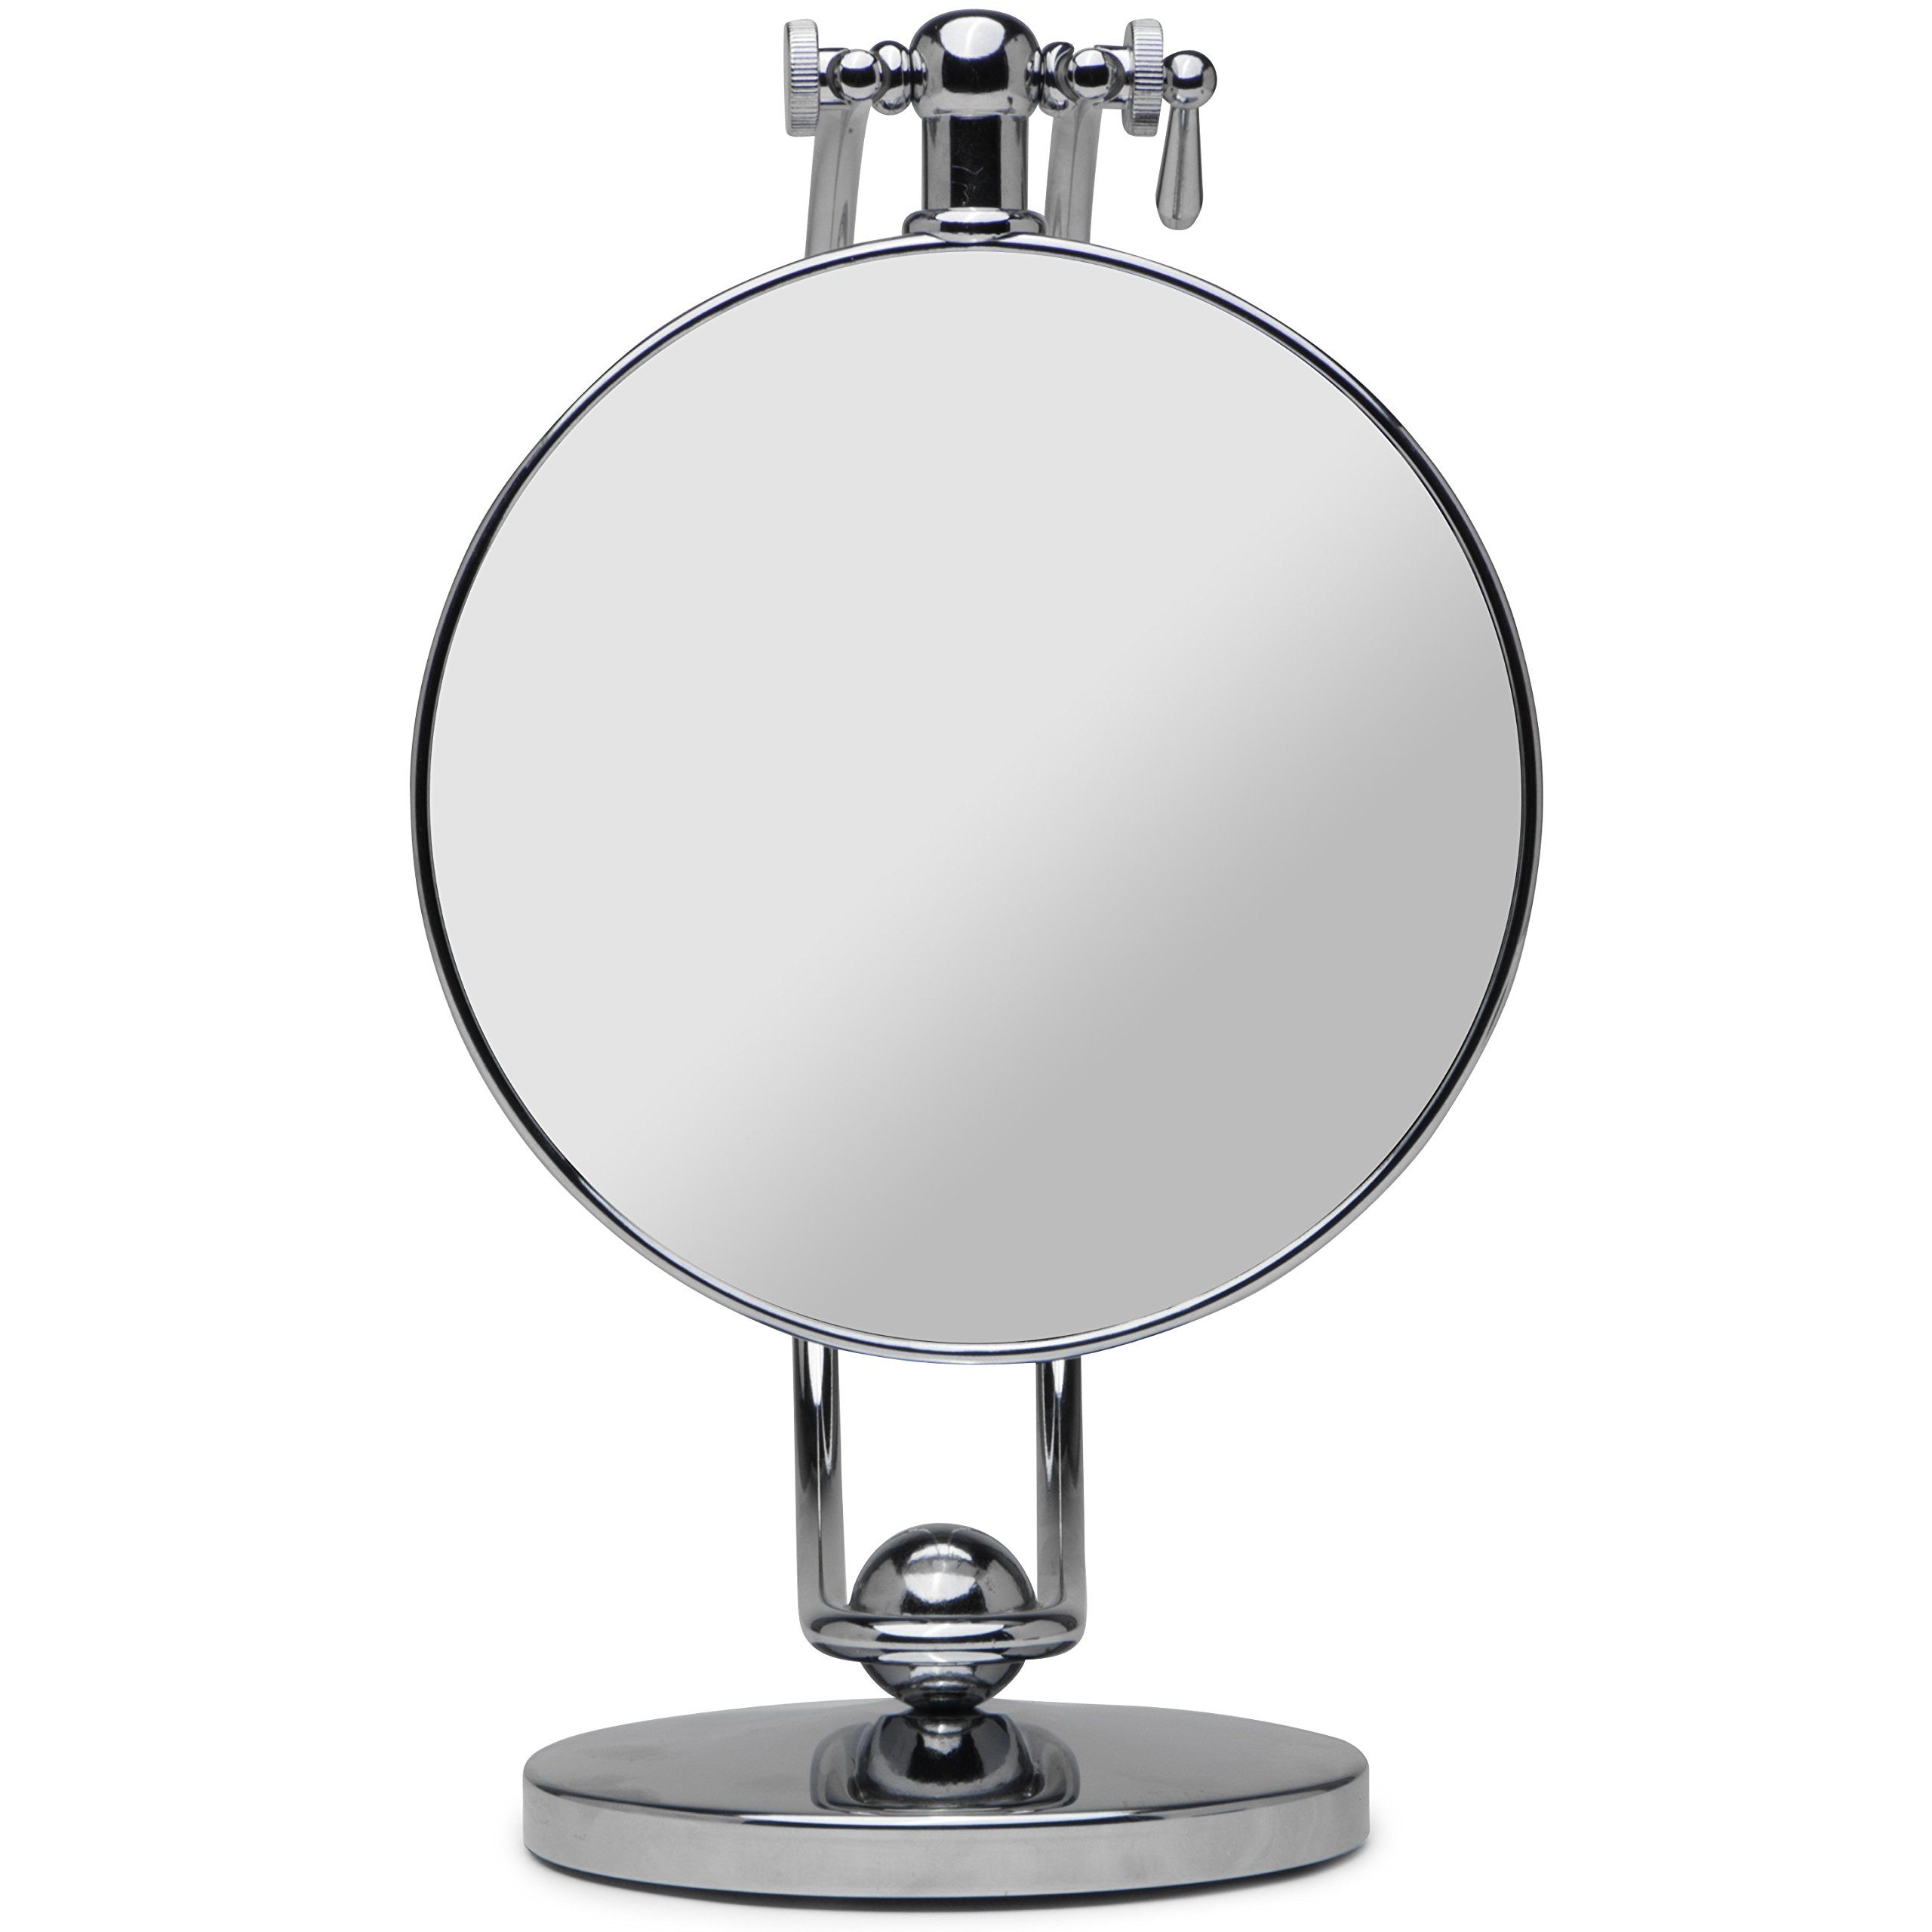 Mirrorvana VISION-360 Swivel Vanity Makeup Mirror with 1x & 7x Magnification | 360° Rotating Angle and Height Adjustable Cosmetic Mirror, 7-Inch by Mirrorvana